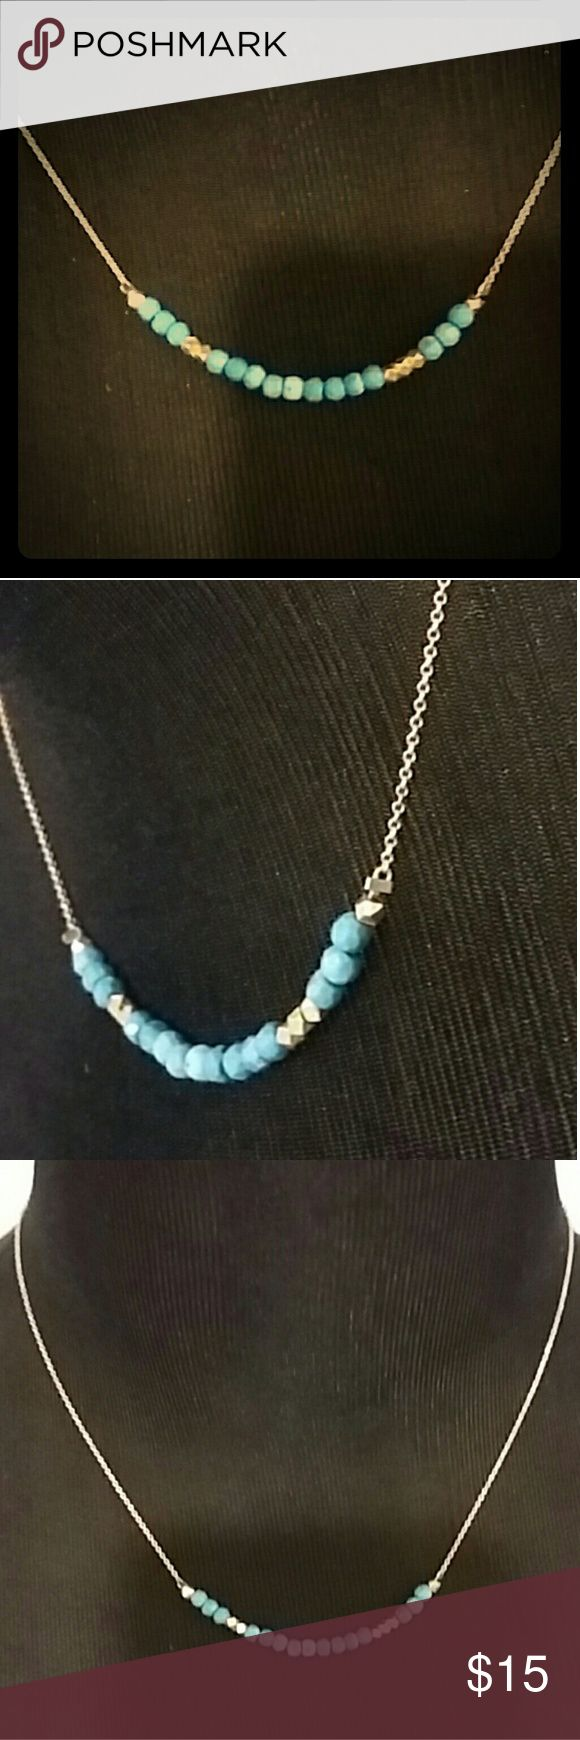 """Cute Morsecode """"I love you"""" gold and teal necklace Cute Morsecode """"I love you"""" gold and teal necklace Jewelry Necklaces"""